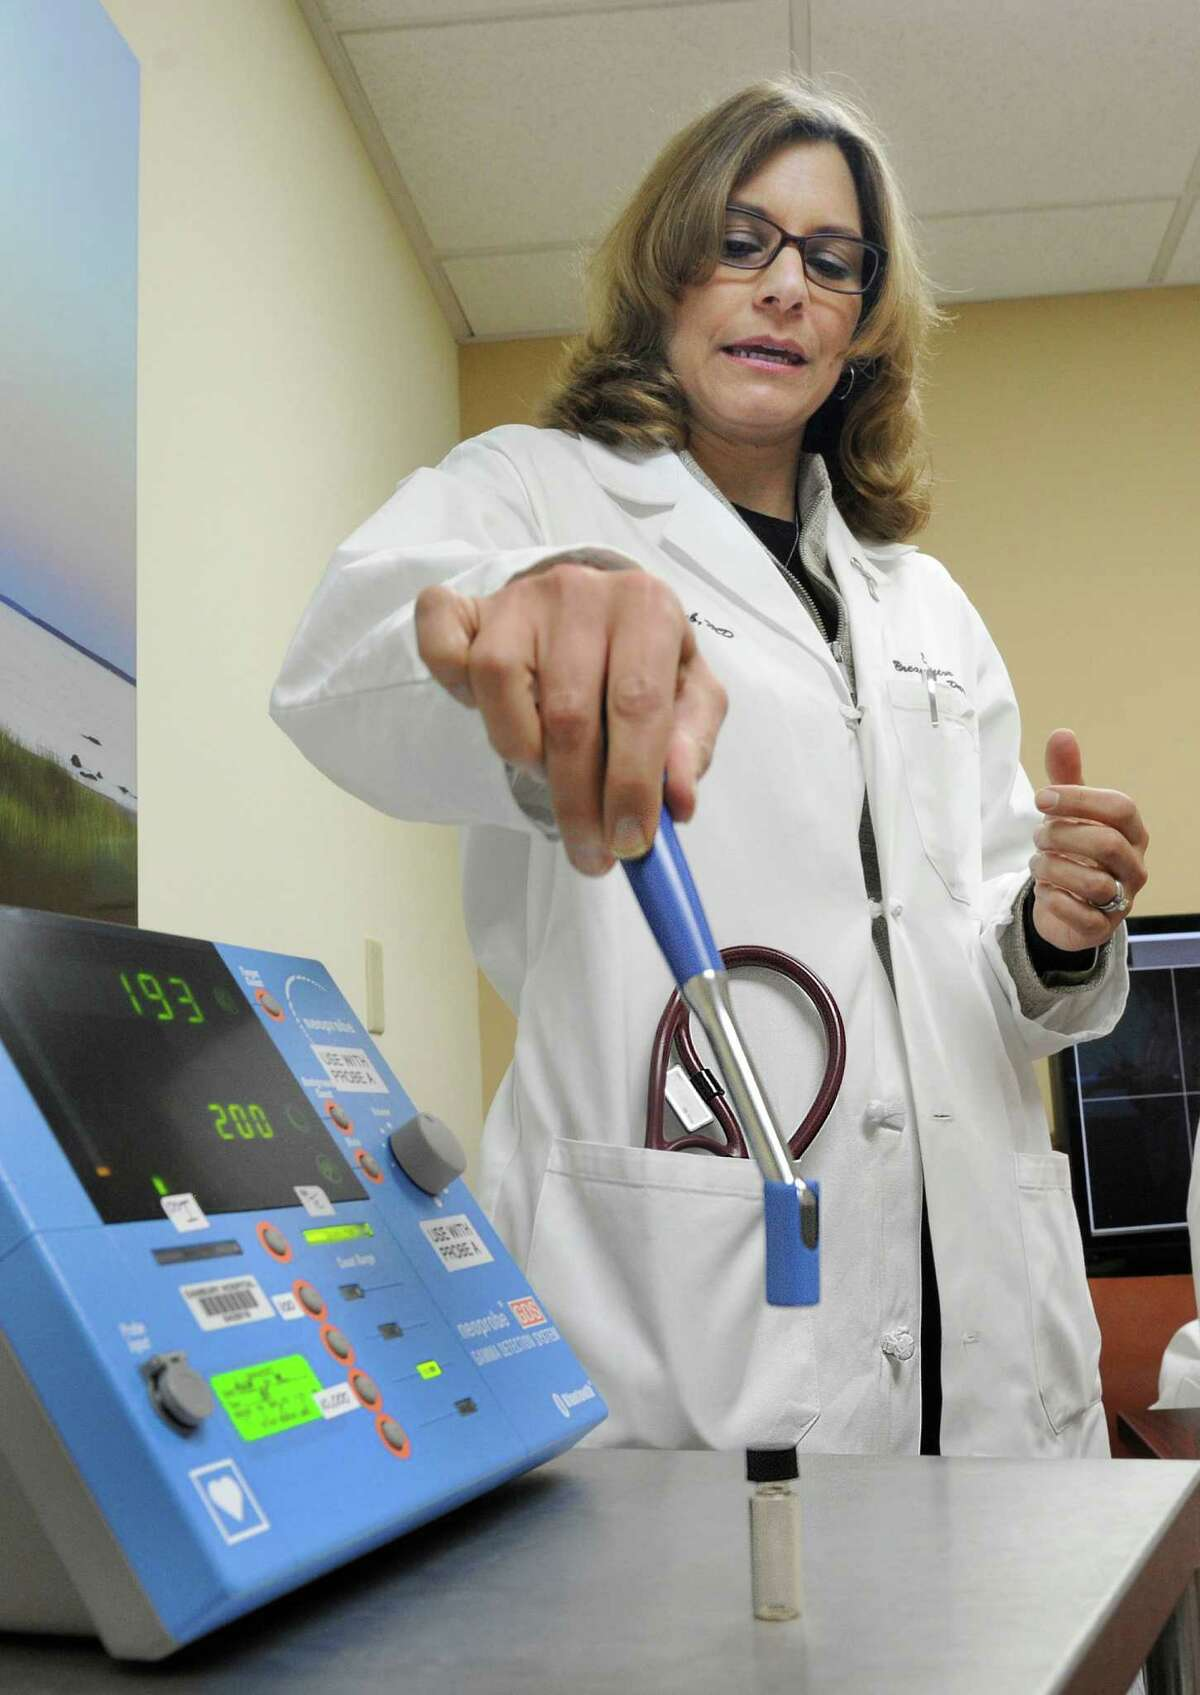 Dr. Valerie Staradub explains a technology that uses radioactive seed localization to remove spots on a woman's breast, Tuesday, Nov. 24, 2014 at Danbury Hospital. Western Connecticut Health Network is the first provider in the state of Connecticut to offer this new technology to accurately locate spots that cannot be felt.